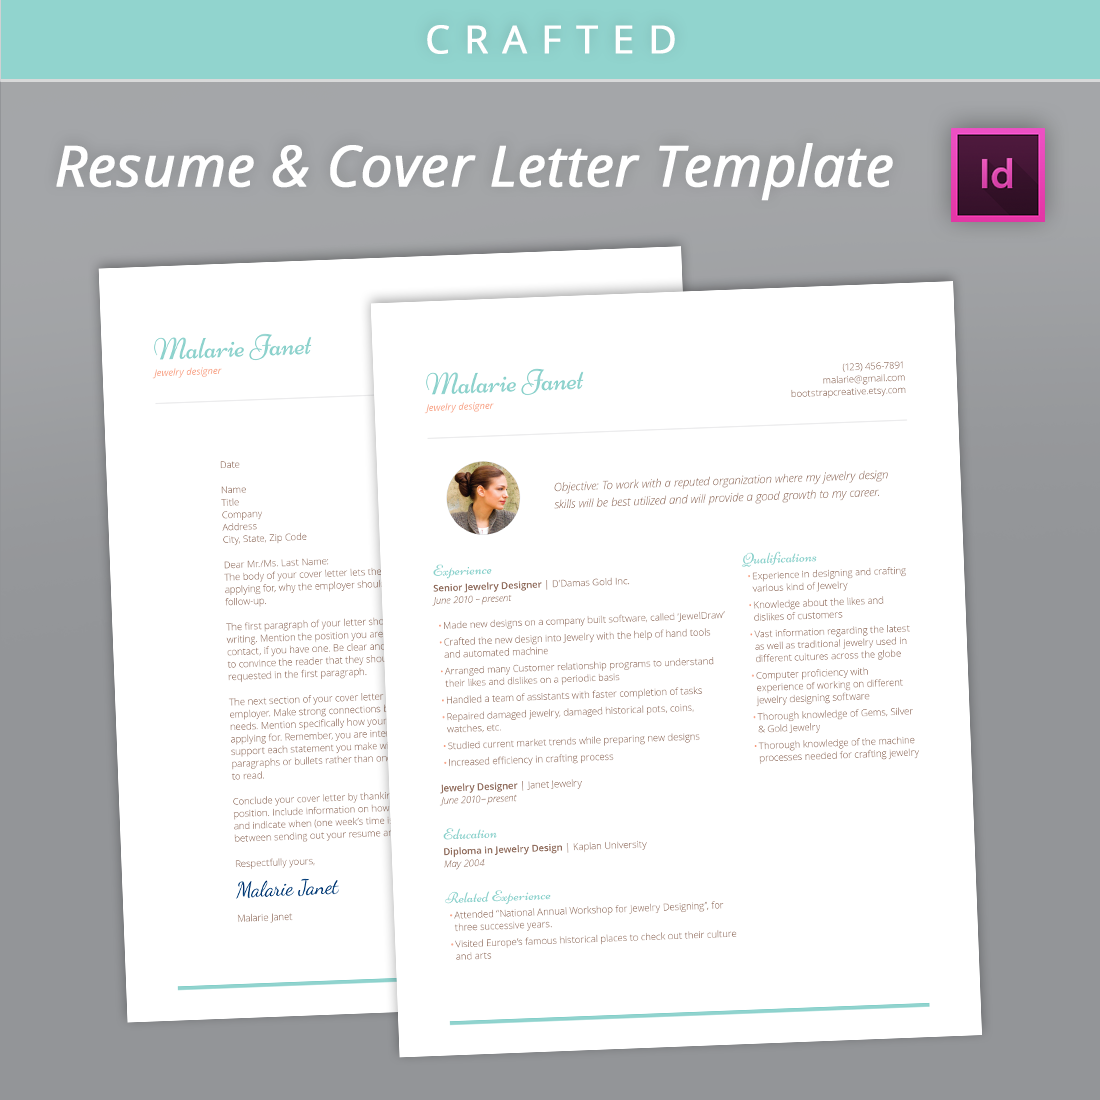 Crafted Resume And Cover Letter Indesign Template  Resume